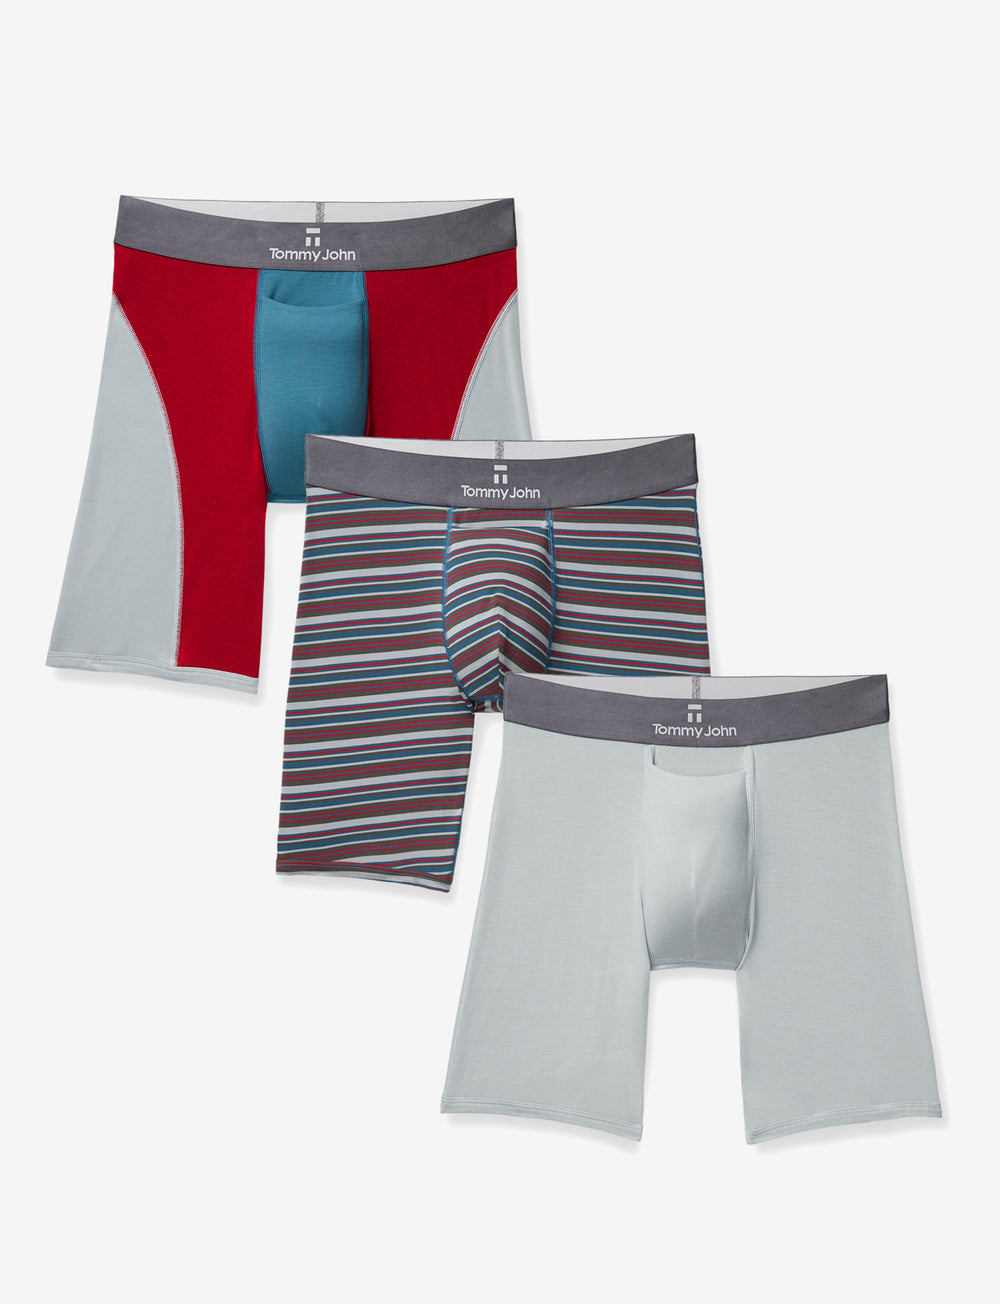 Second Skin High Summer Boxer Brief 3 Pack Details Image